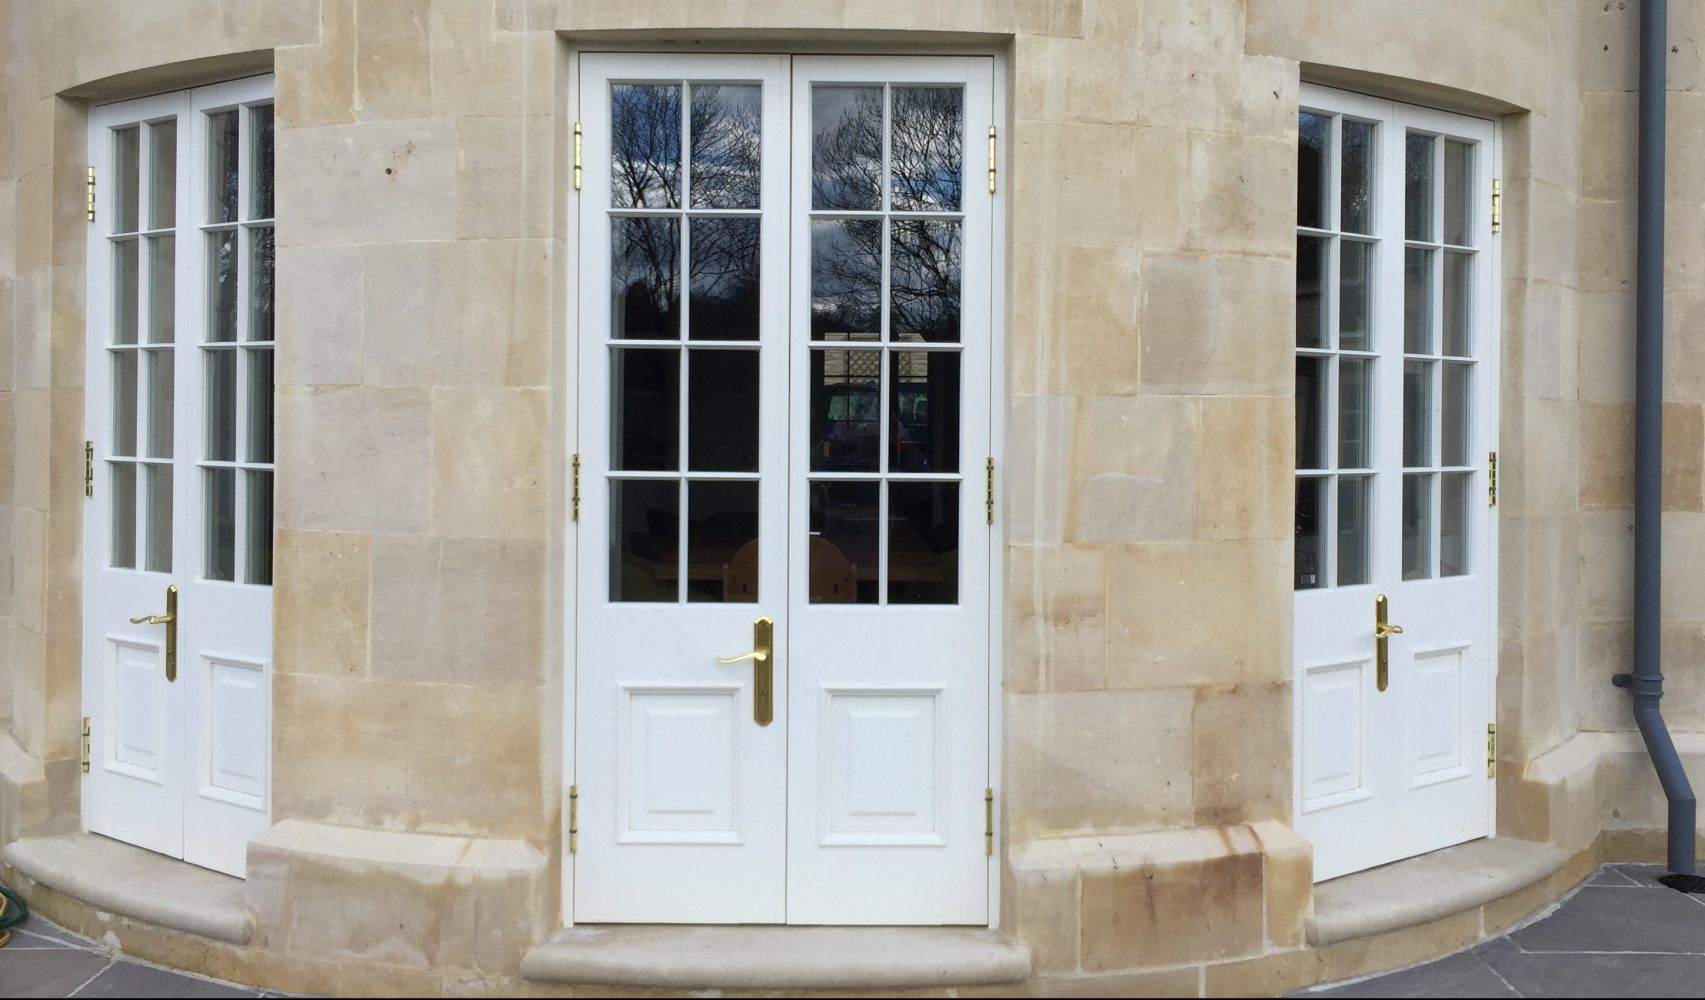 Polishinterior Quality Doors And Windows At Competitive Prices